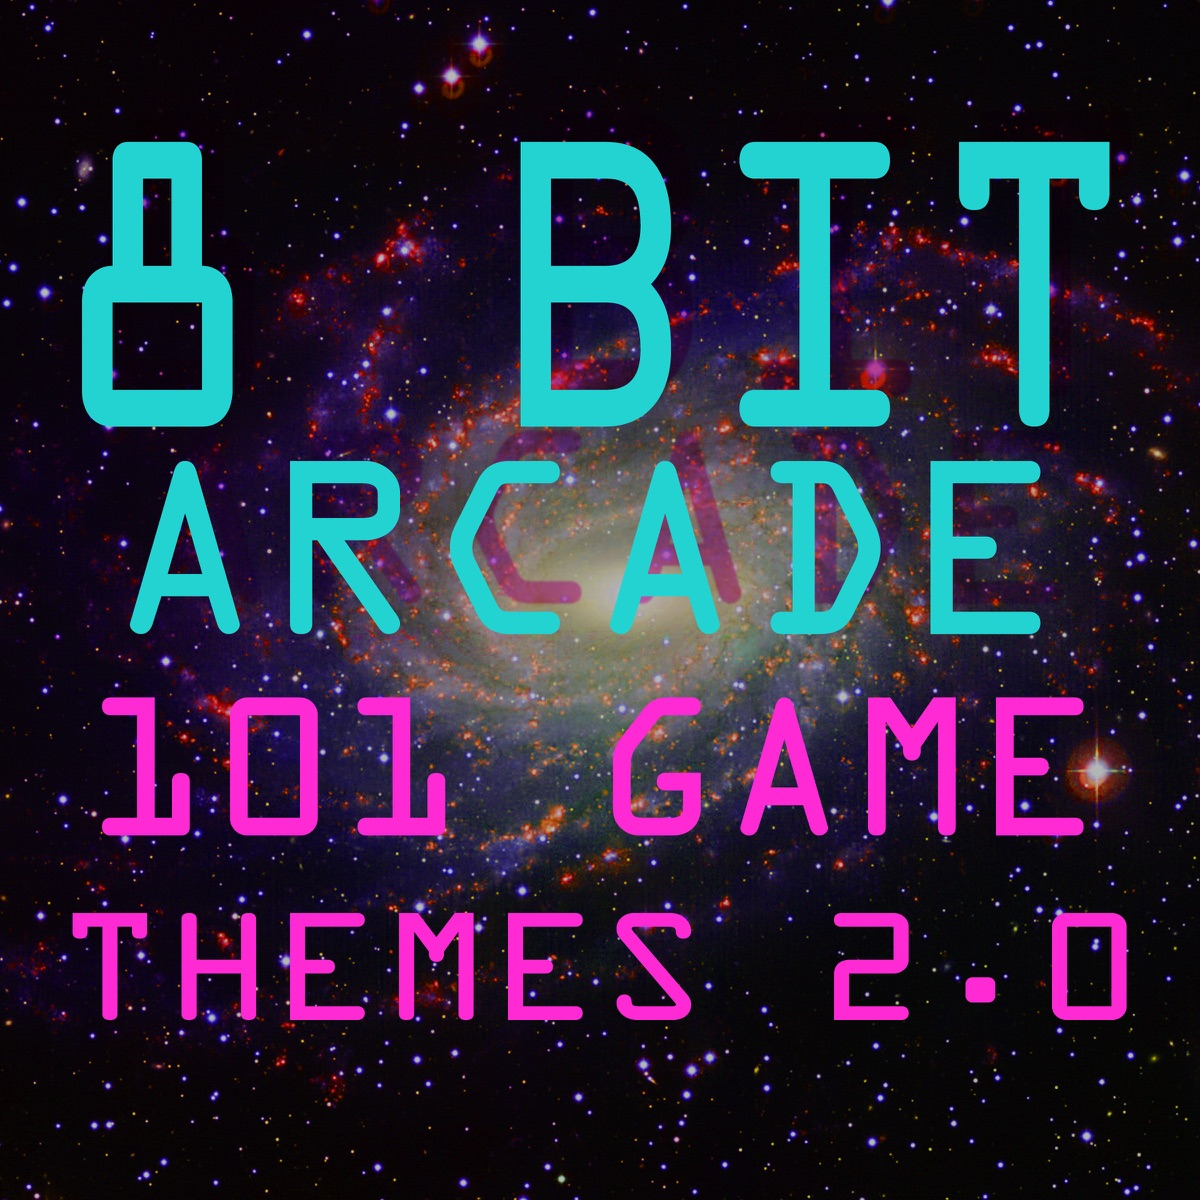 101 Game Themes Vol 20 8-Bit Arcade CD cover